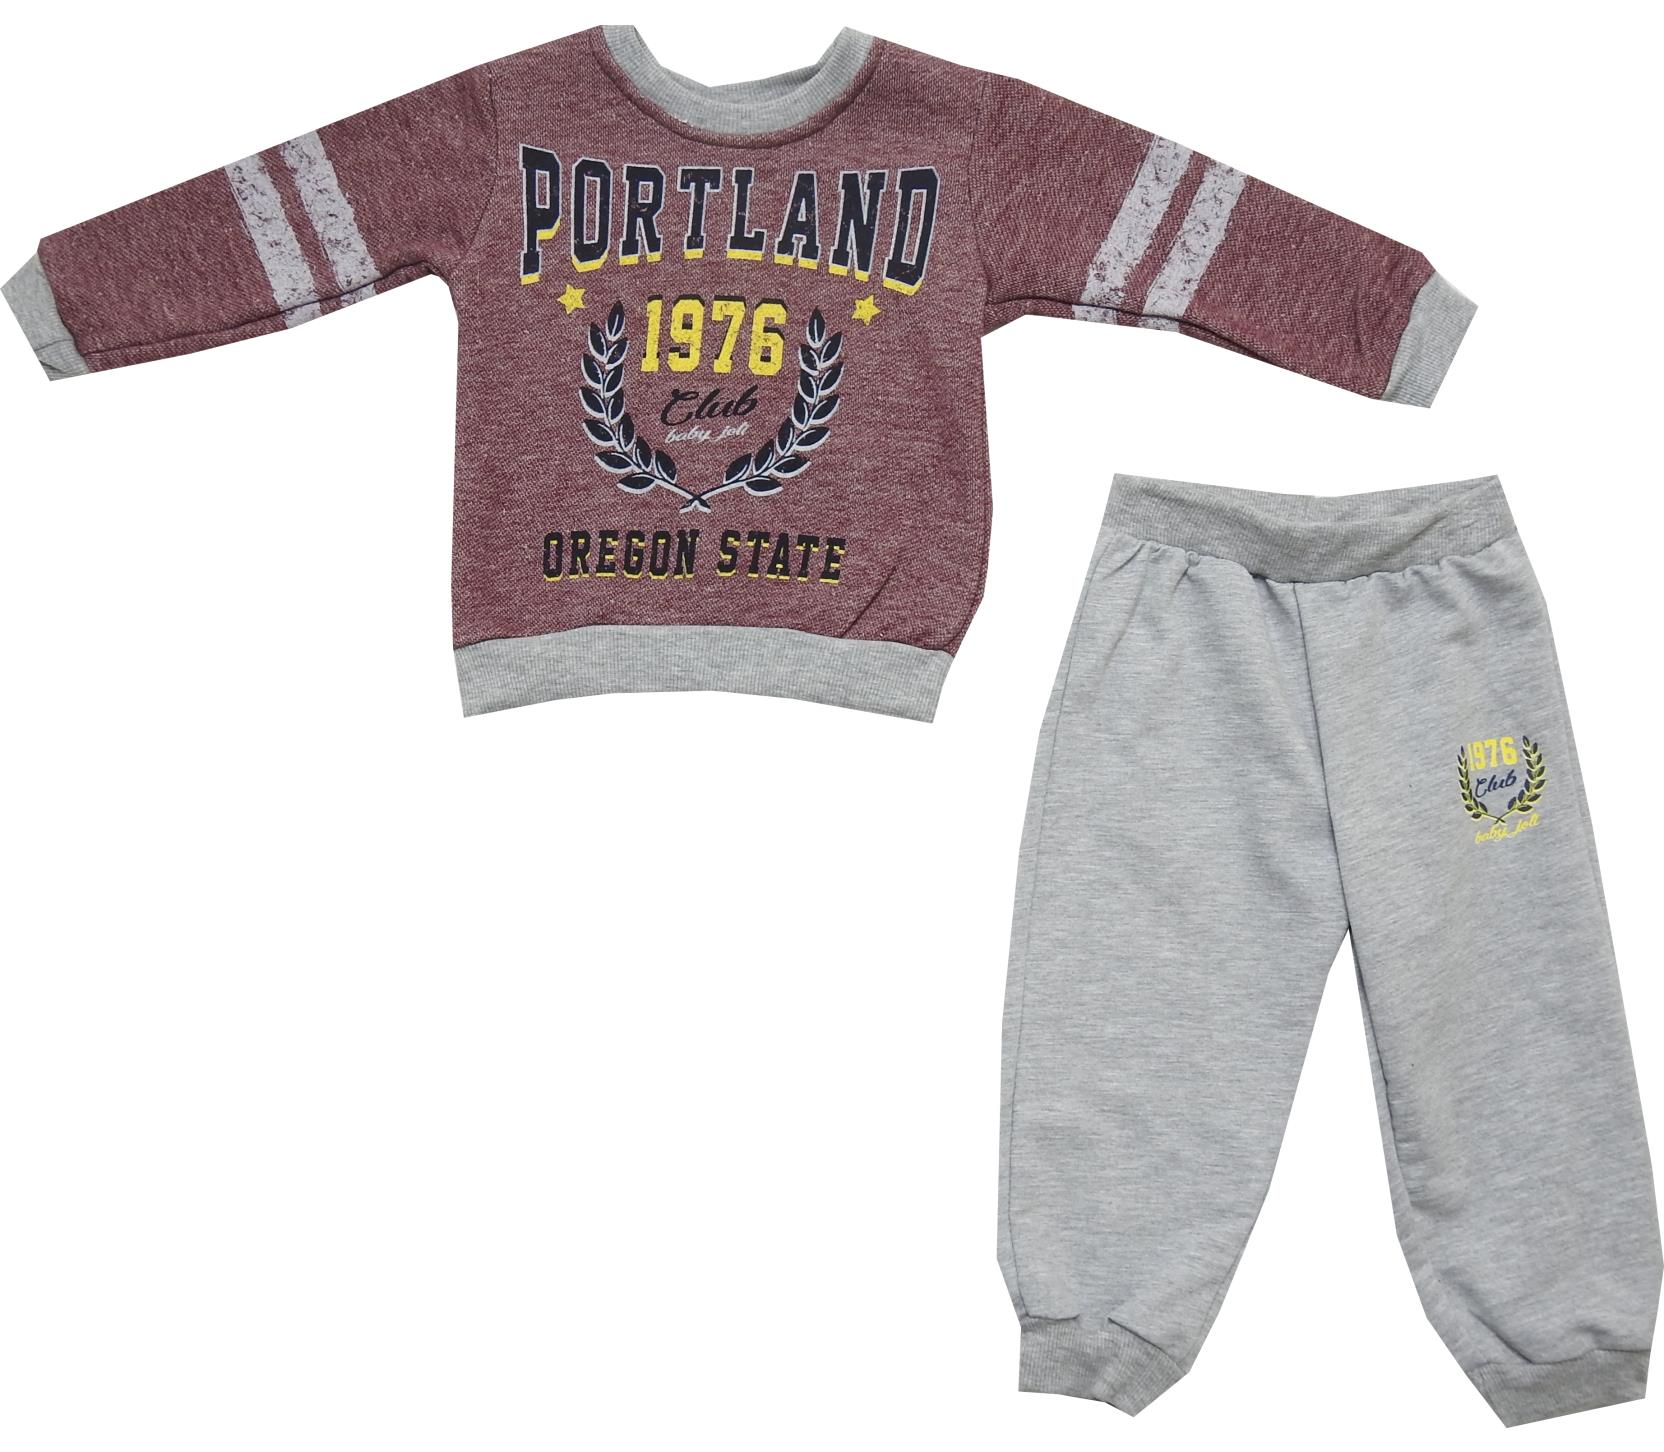 Wholesale portland 1976 print sweatshirt and trouser double set tracksuit for boy (3-4-5-6 age)